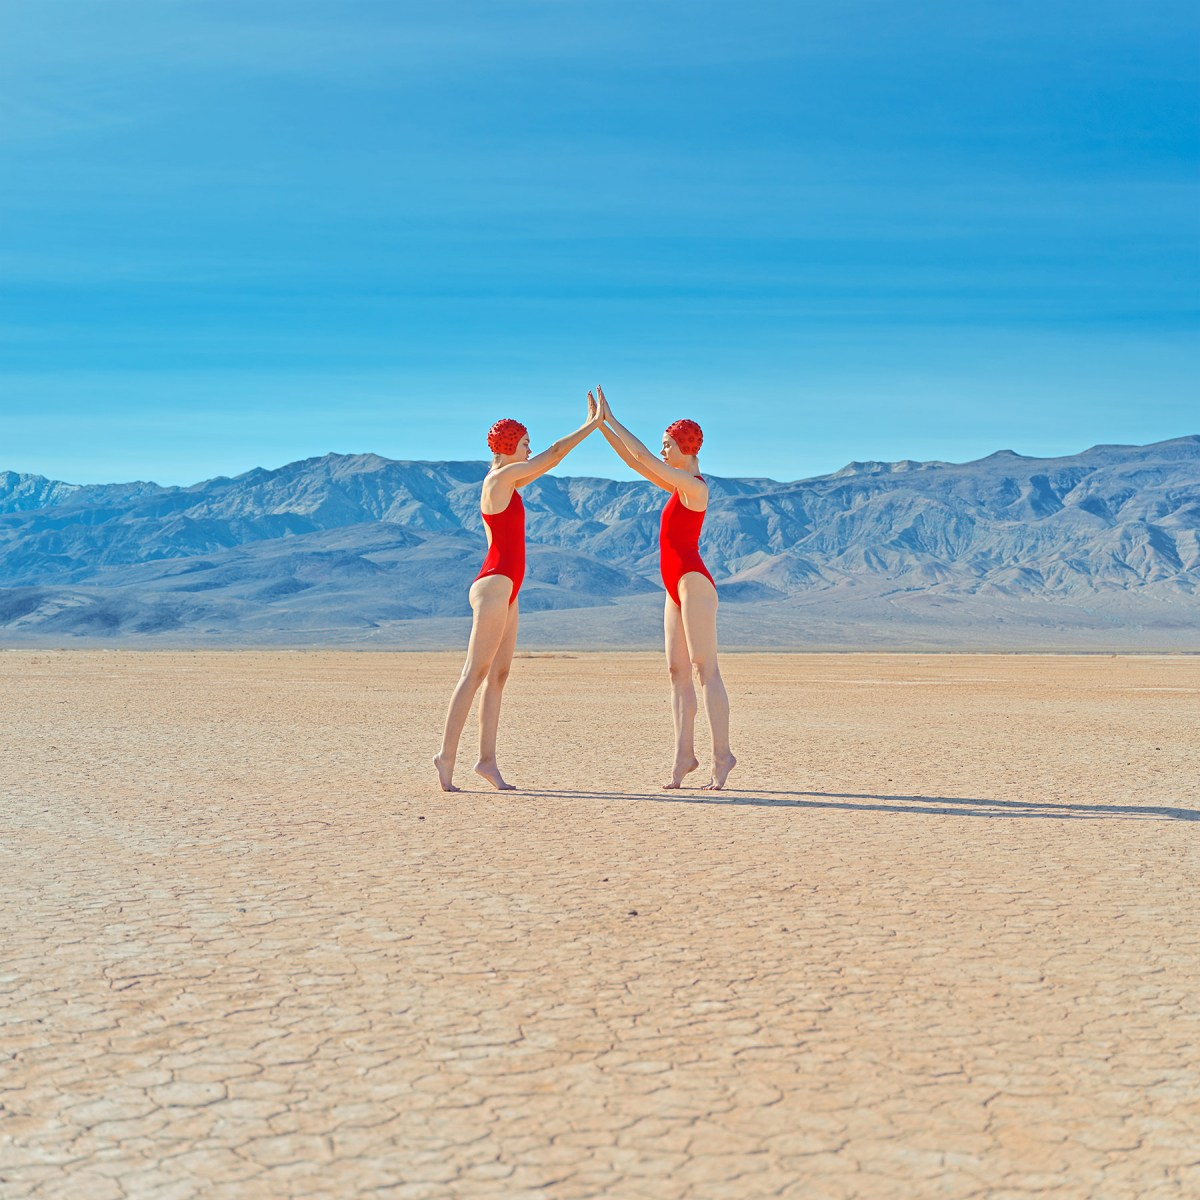 swimmers in the desert